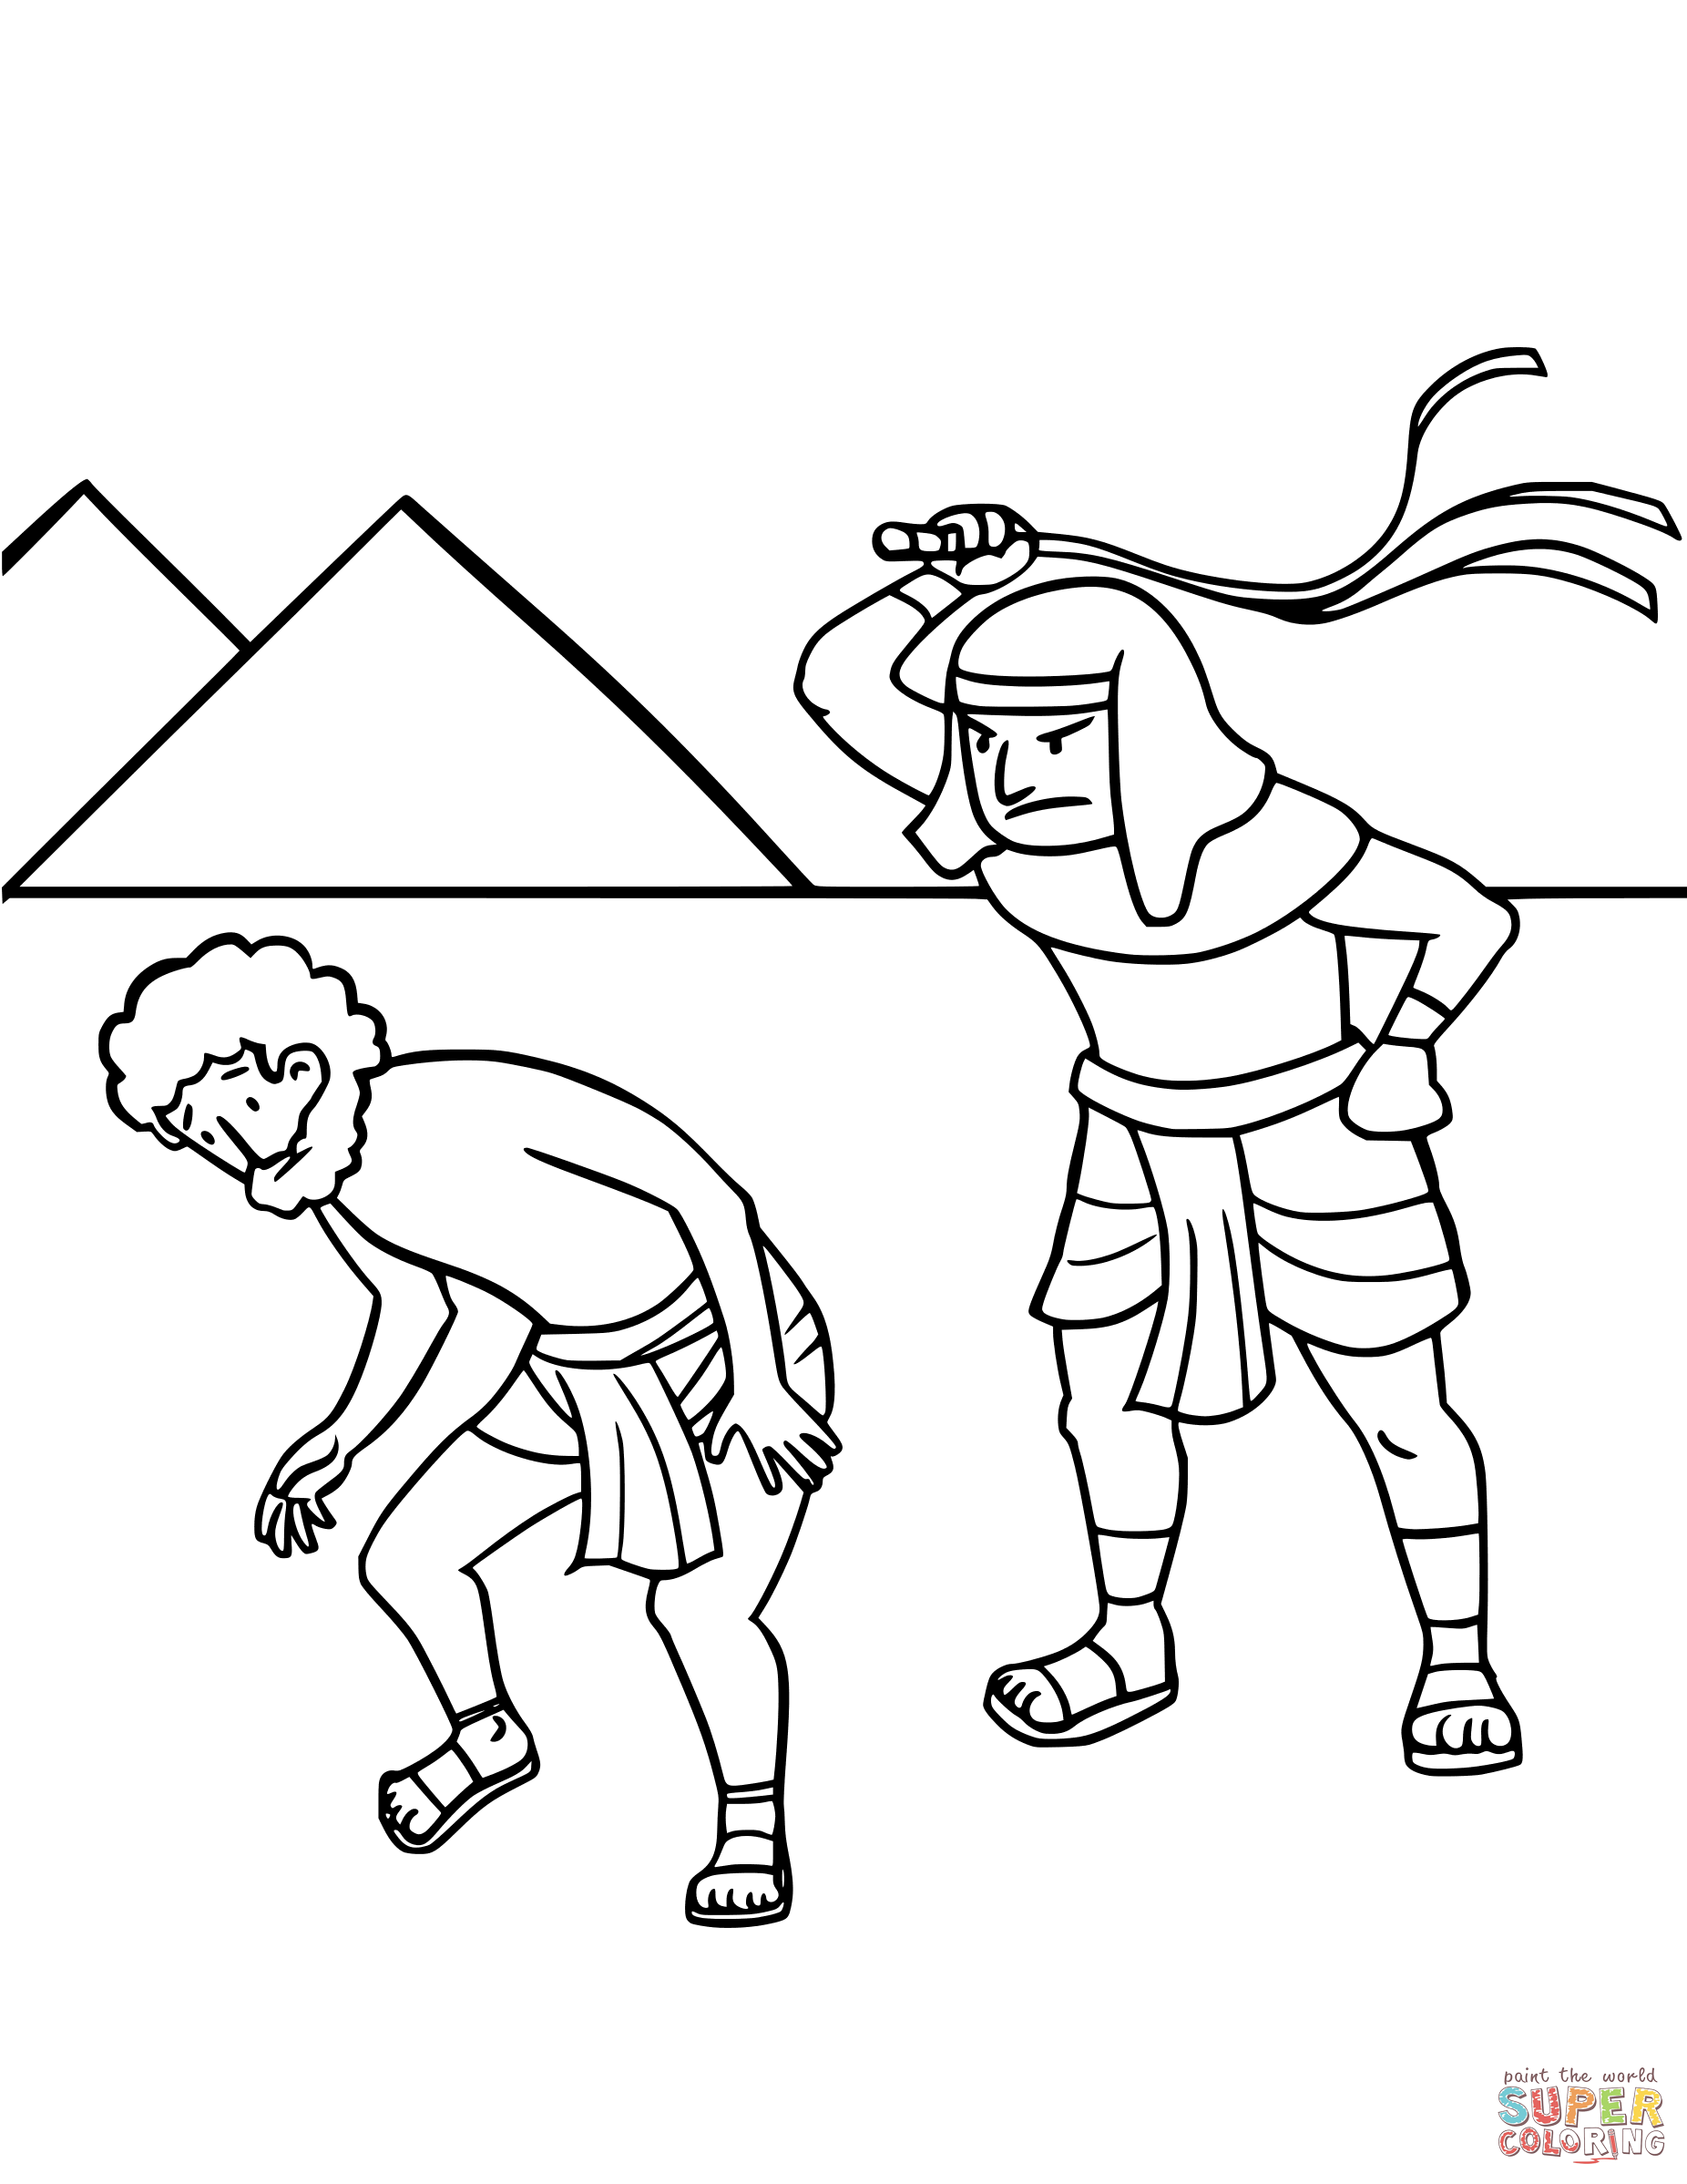 Israel's Enslavement in Egypt coloring page | Free Printable Coloring Pages